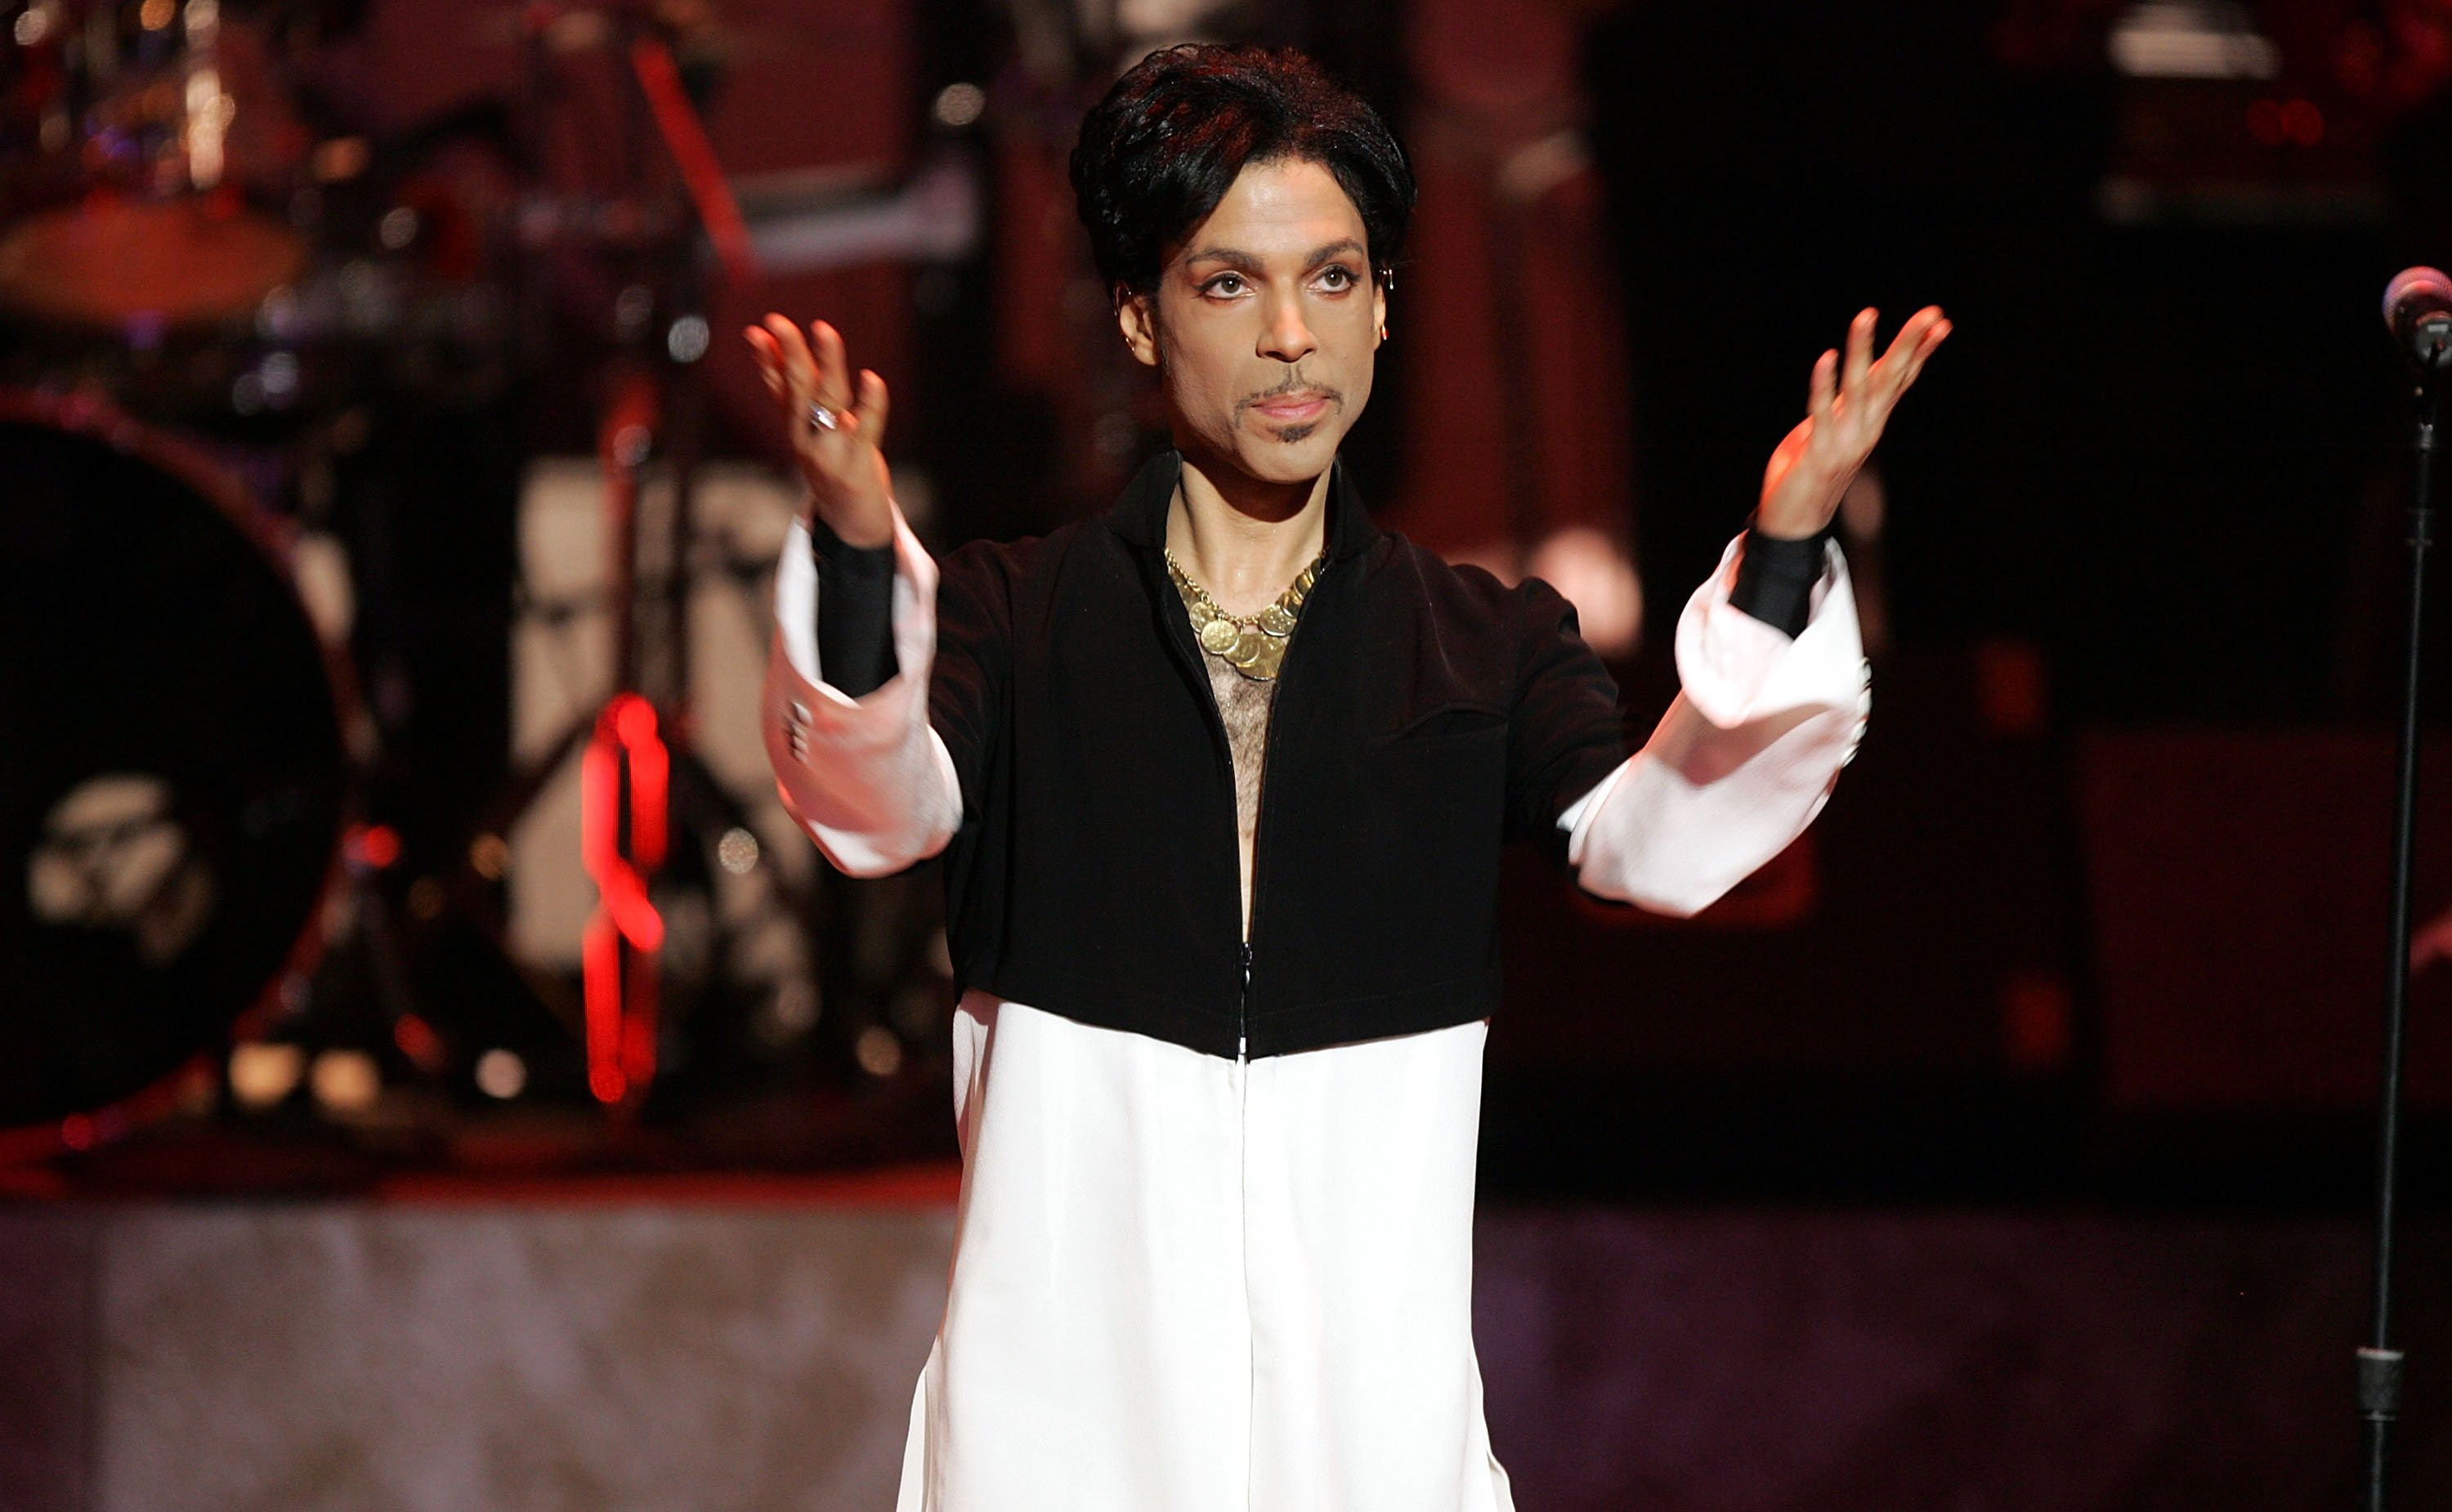 Prince is seen on stage at the 36th NAACP Image Awards at the Dorothy Chandler Pavilion on March 19, 2005 in Los Angeles, California | Photo: GettyImages